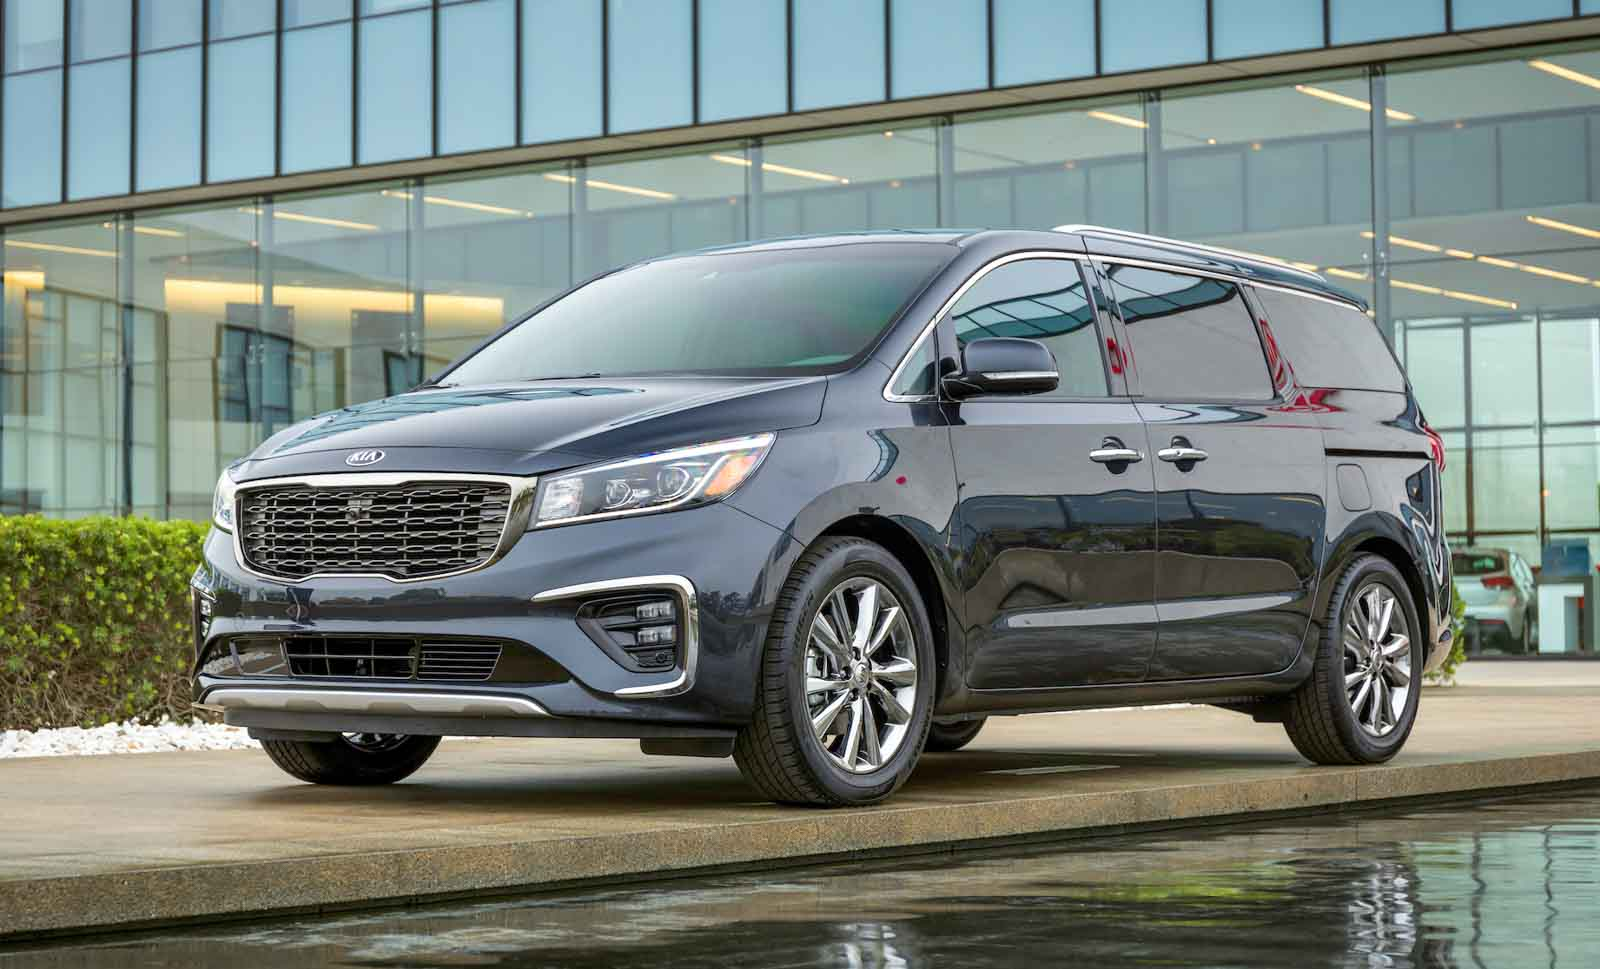 Over 3000 Kia Carnival Sold In Just 3 Months In India